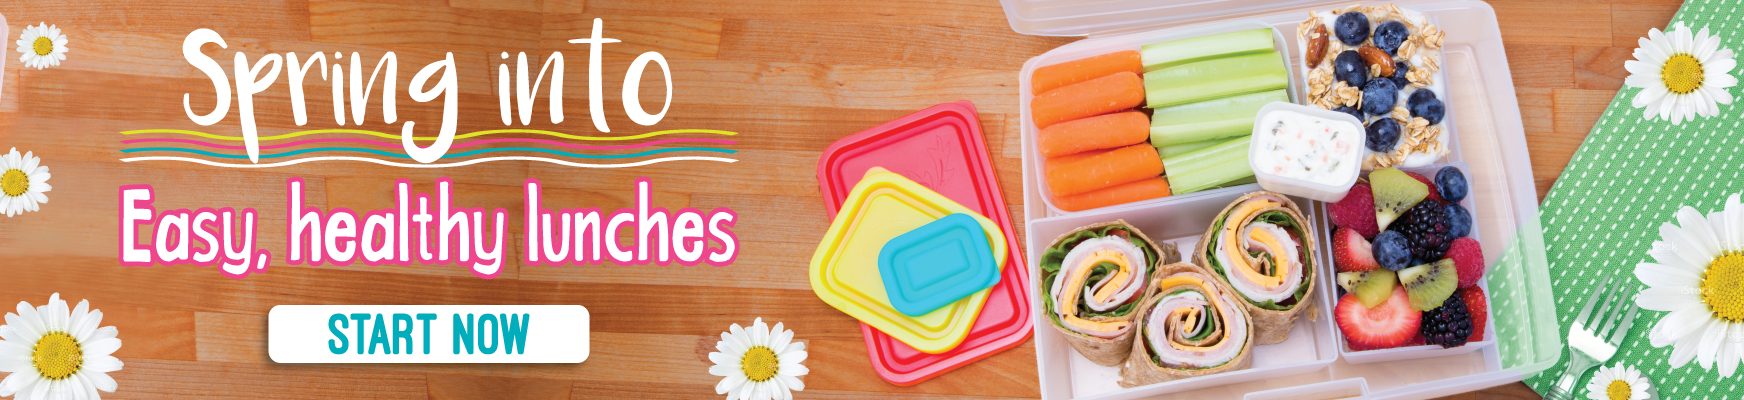 Spring into healthy and easy lunches with Bentology - Order today!